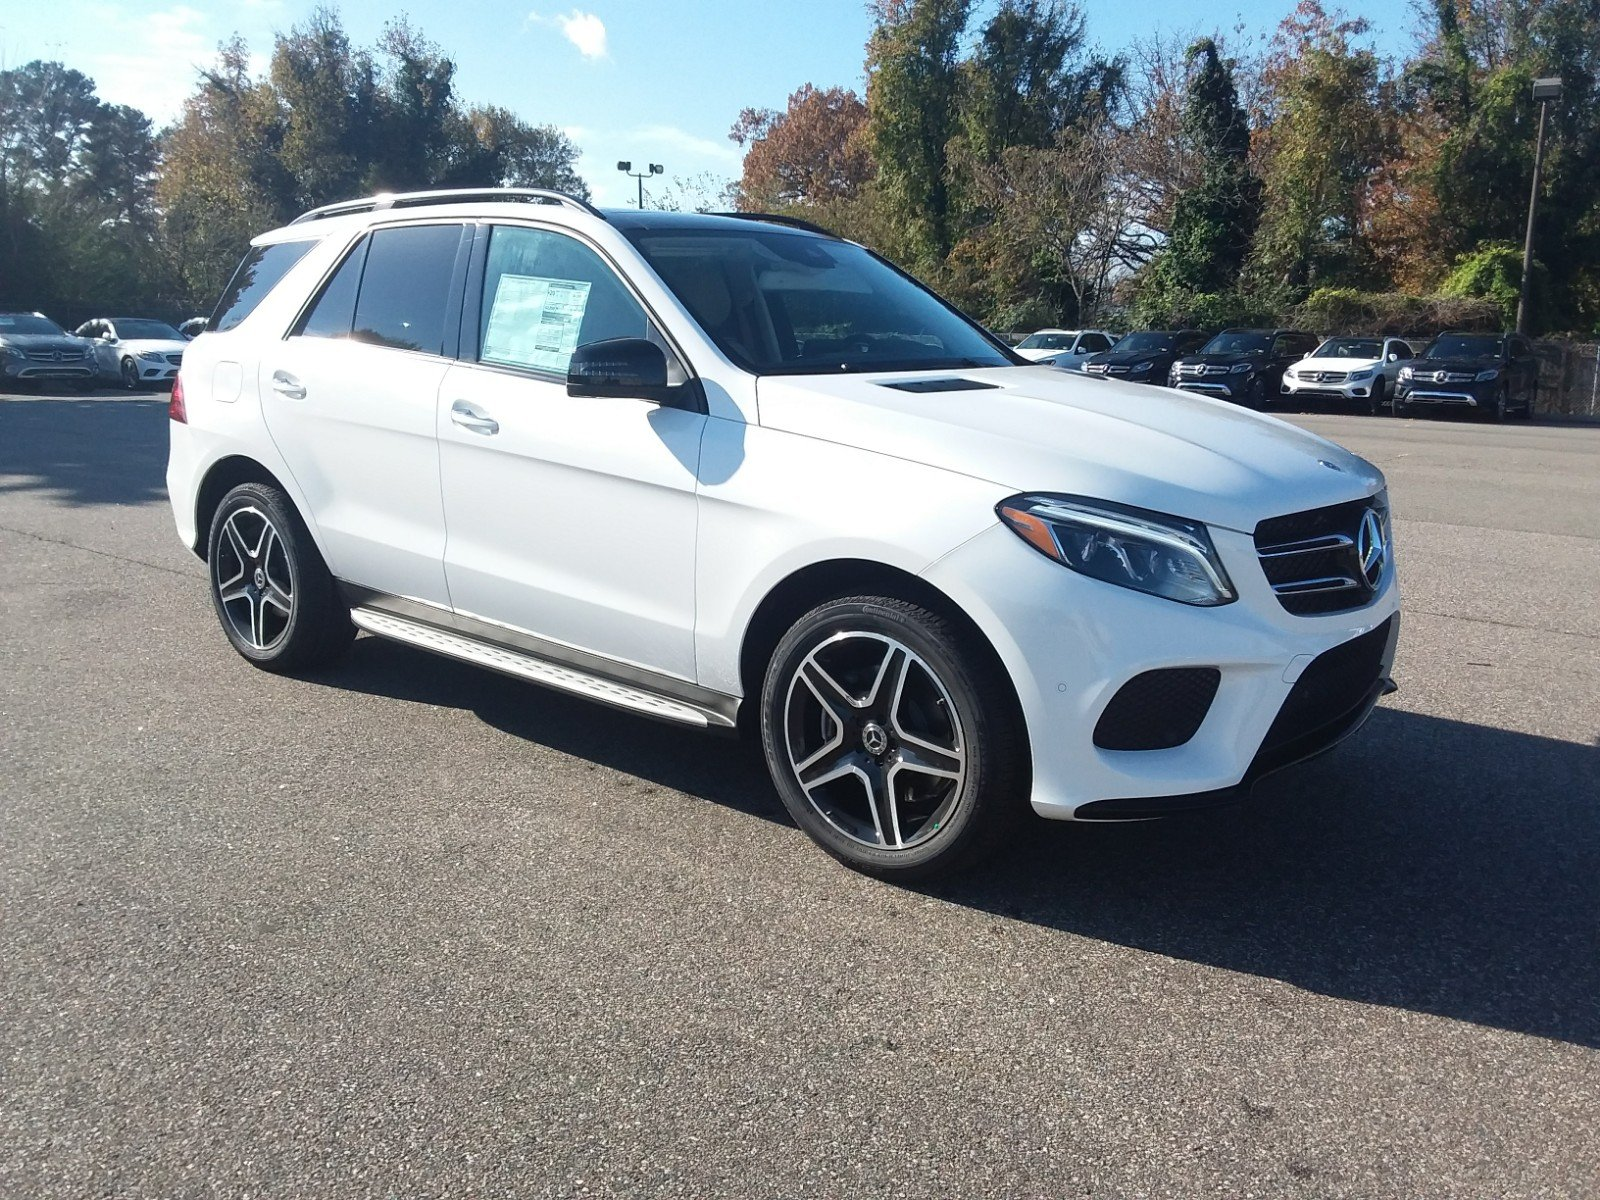 New 2019 Mercedes Benz GLE GLE 400 SUV in Richmond